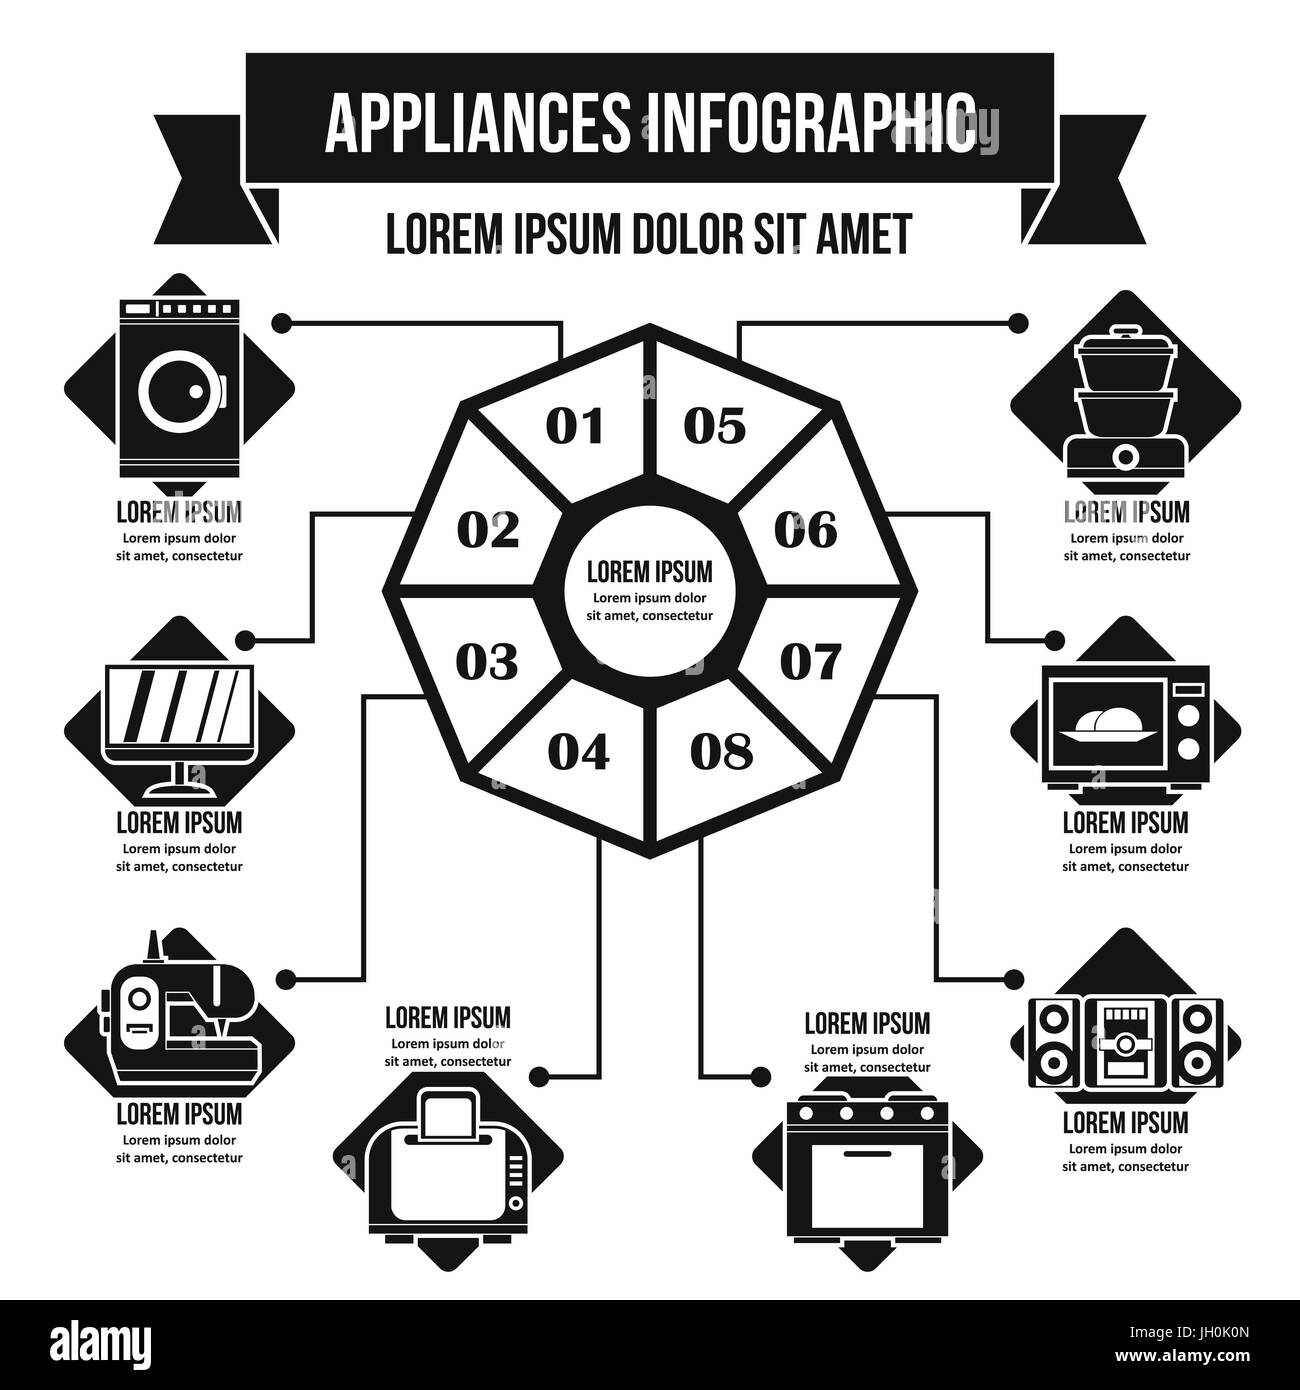 Appliances infographic concept, simple style - Stock Image